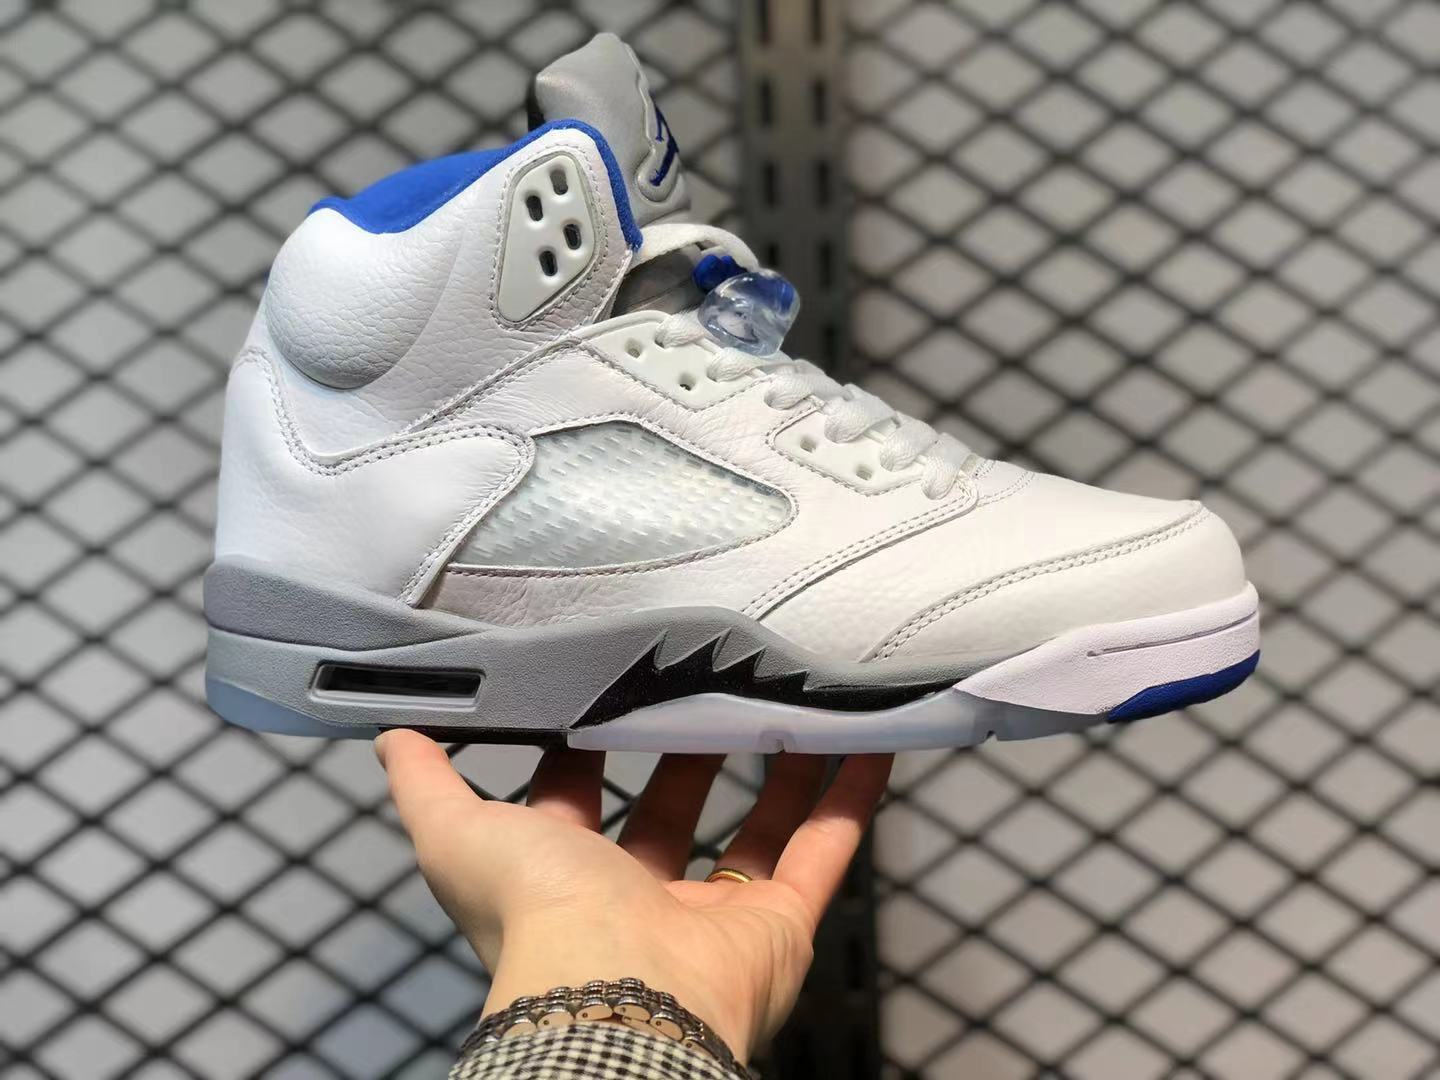 Air Jordan 5 Retro White Stealth-Black-Hyper Royal DD0587-140 For Sale